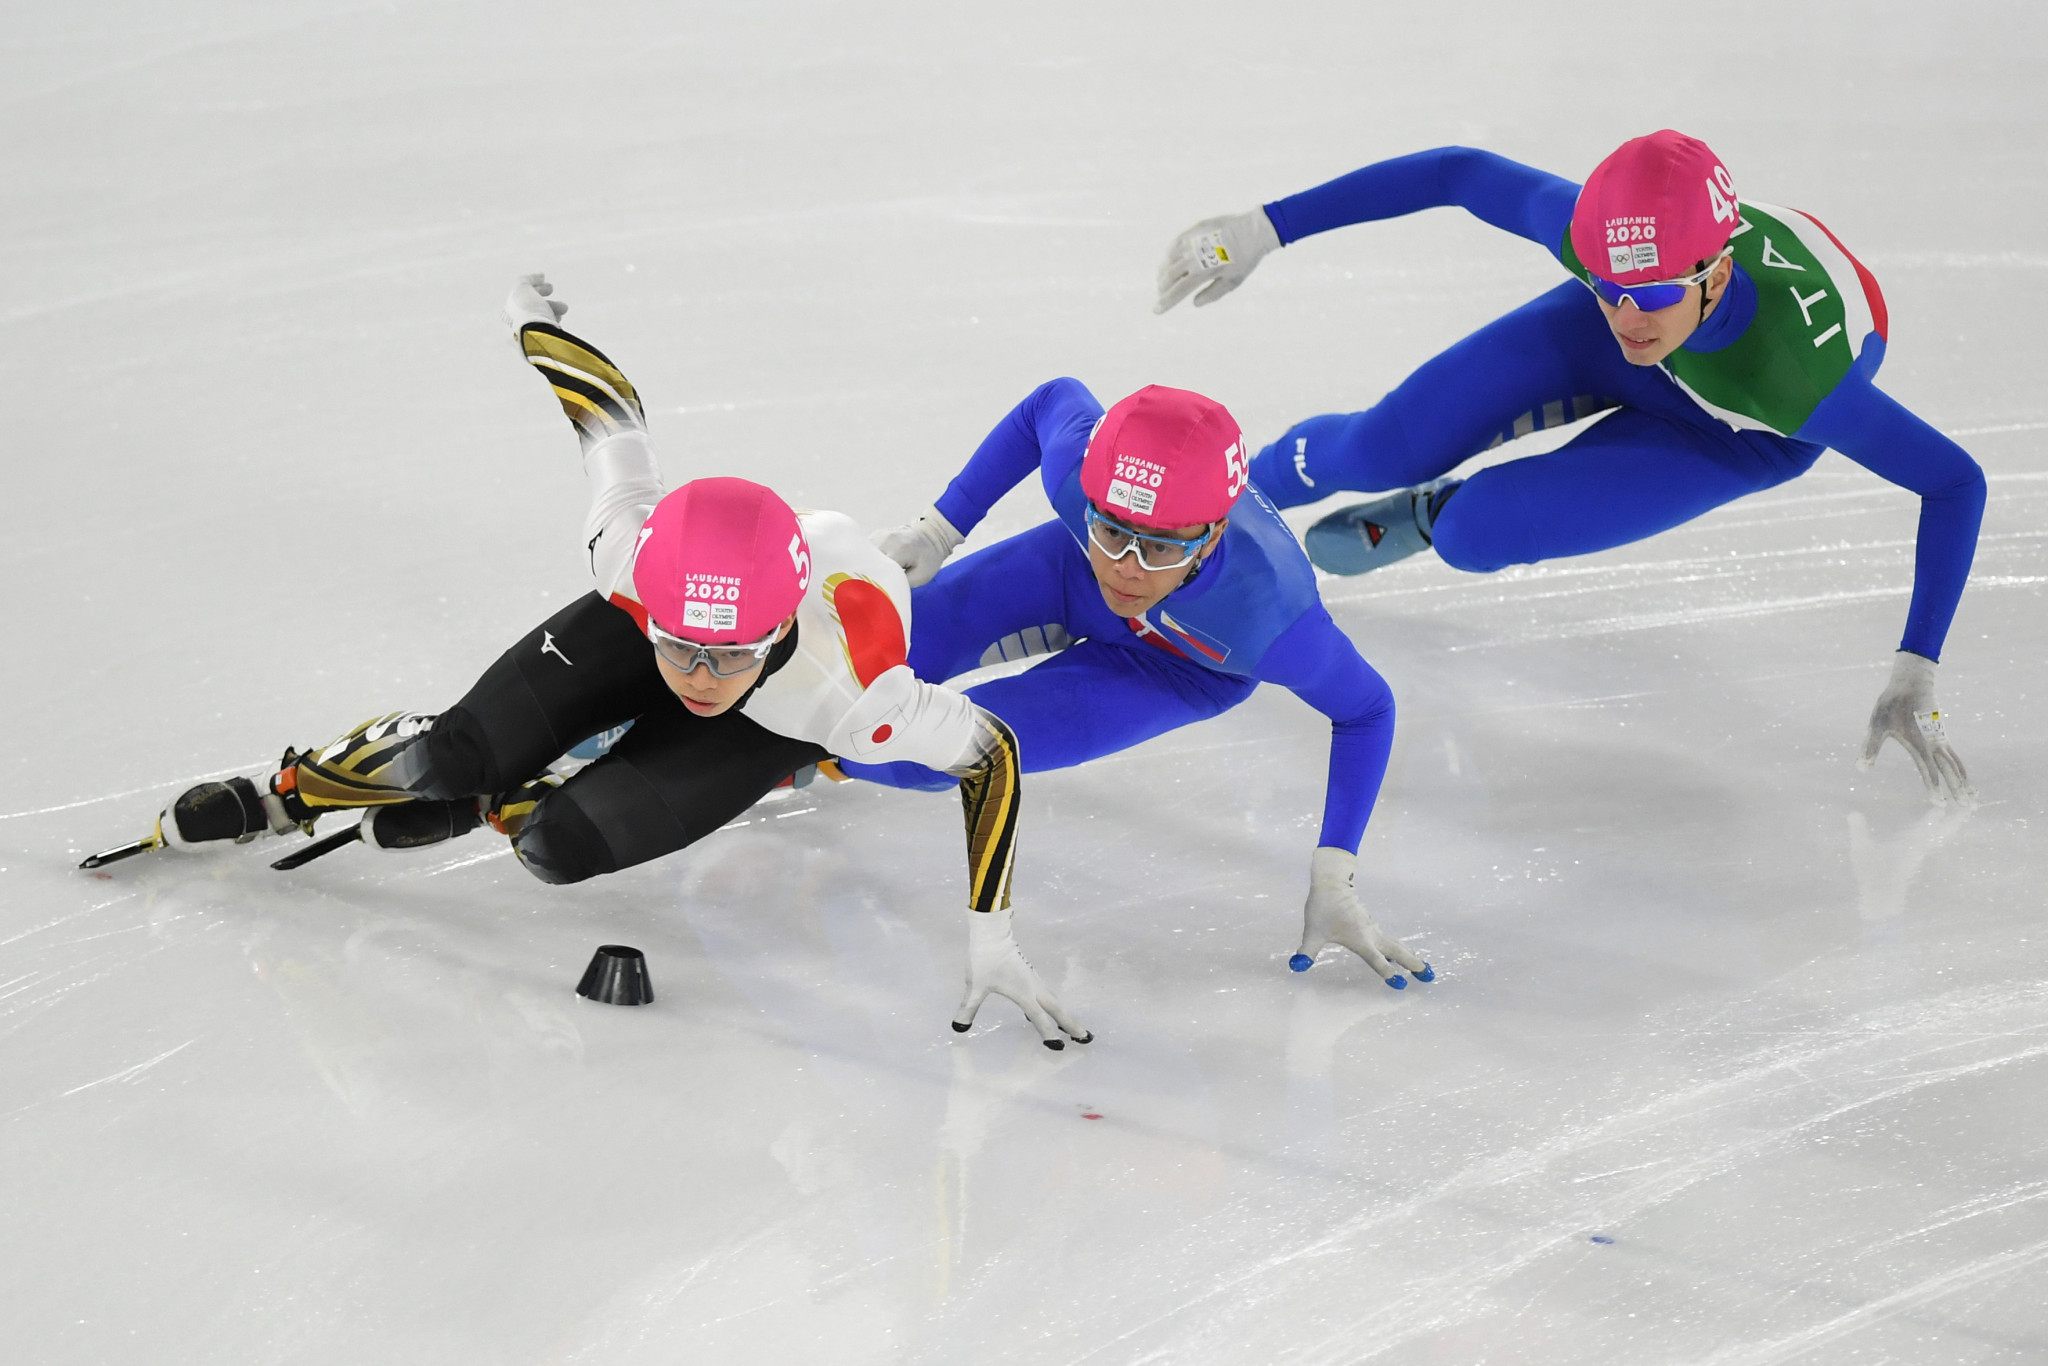 Fundraiser launched for Filipino speed skater Macaraeg's efforts to reach Beijing 2022